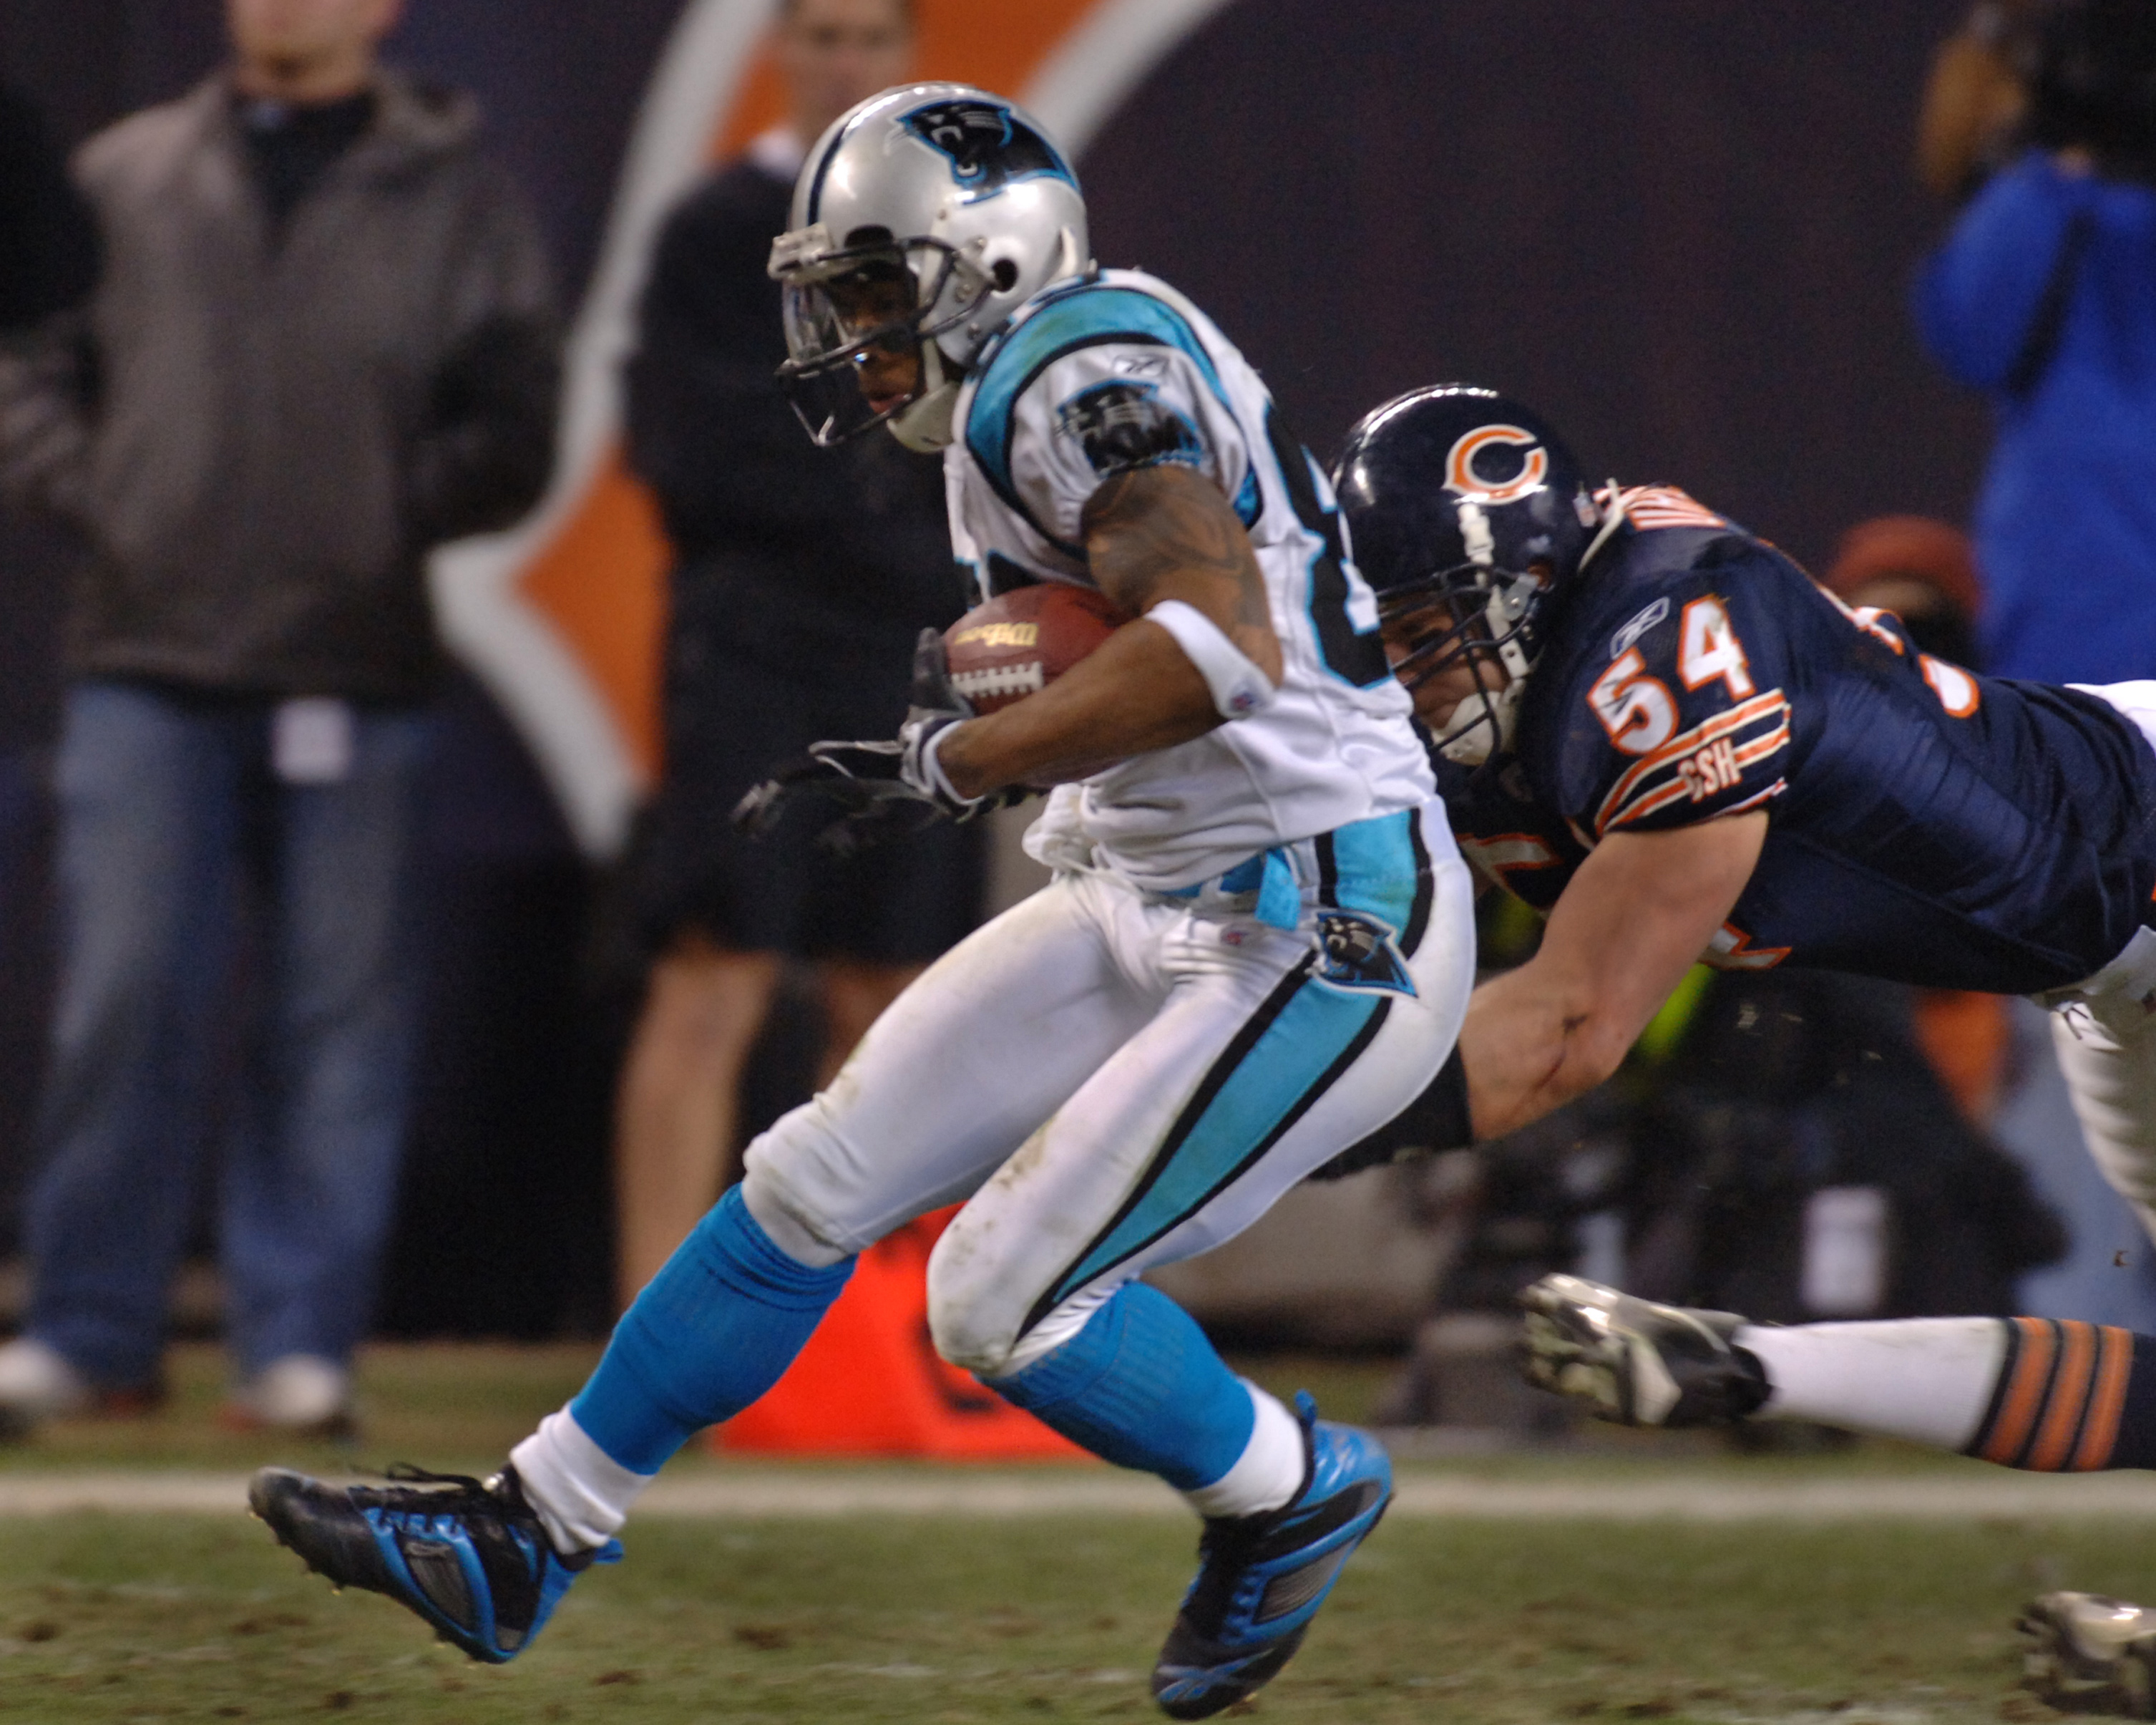 Carolina Panthers wide receiver Steve Smith grabs a pass  during an NFC divisional playoff game against the Chicago Bears January 15, 2006 at Soldier Field, Chicago.  The Panthers defeated the Bears 29 - 21.  (Photo by Al Messerschmidt/Getty Images)